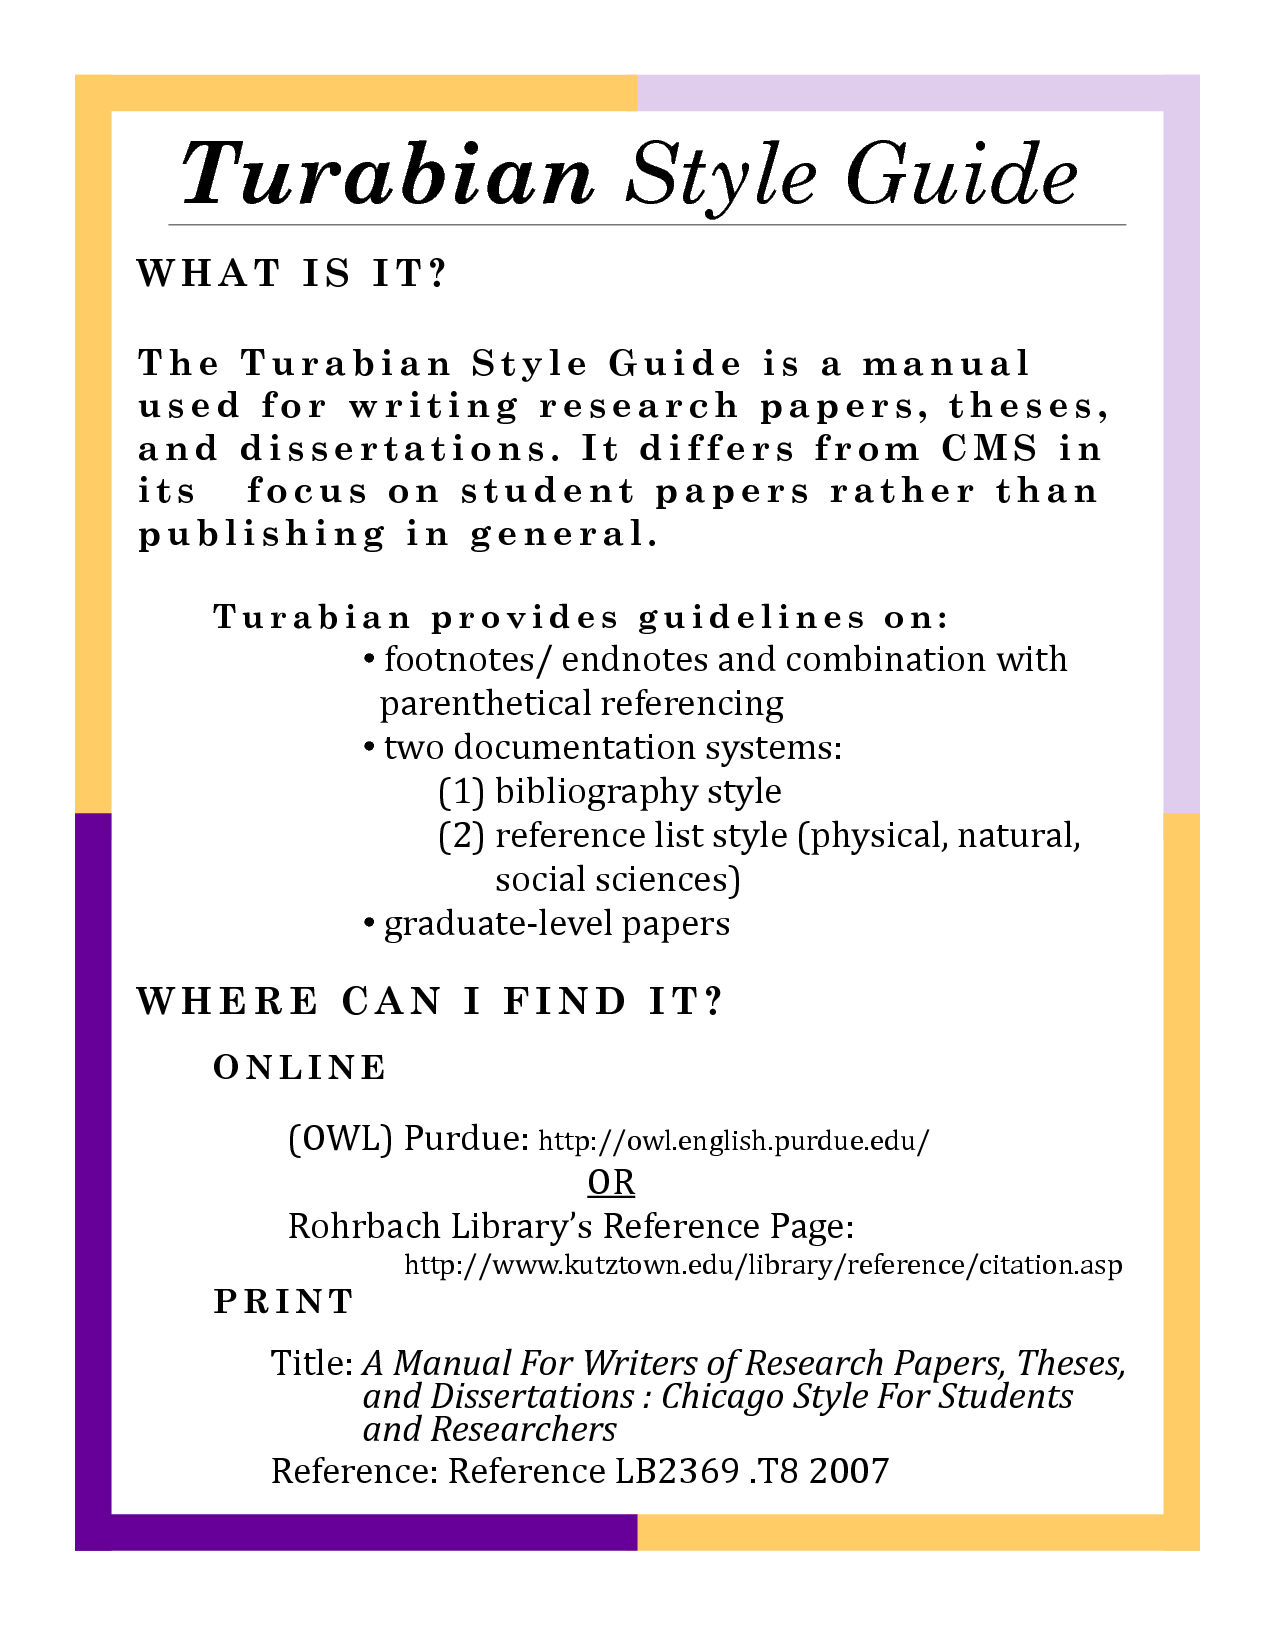 CITATION QUICK GUIDE